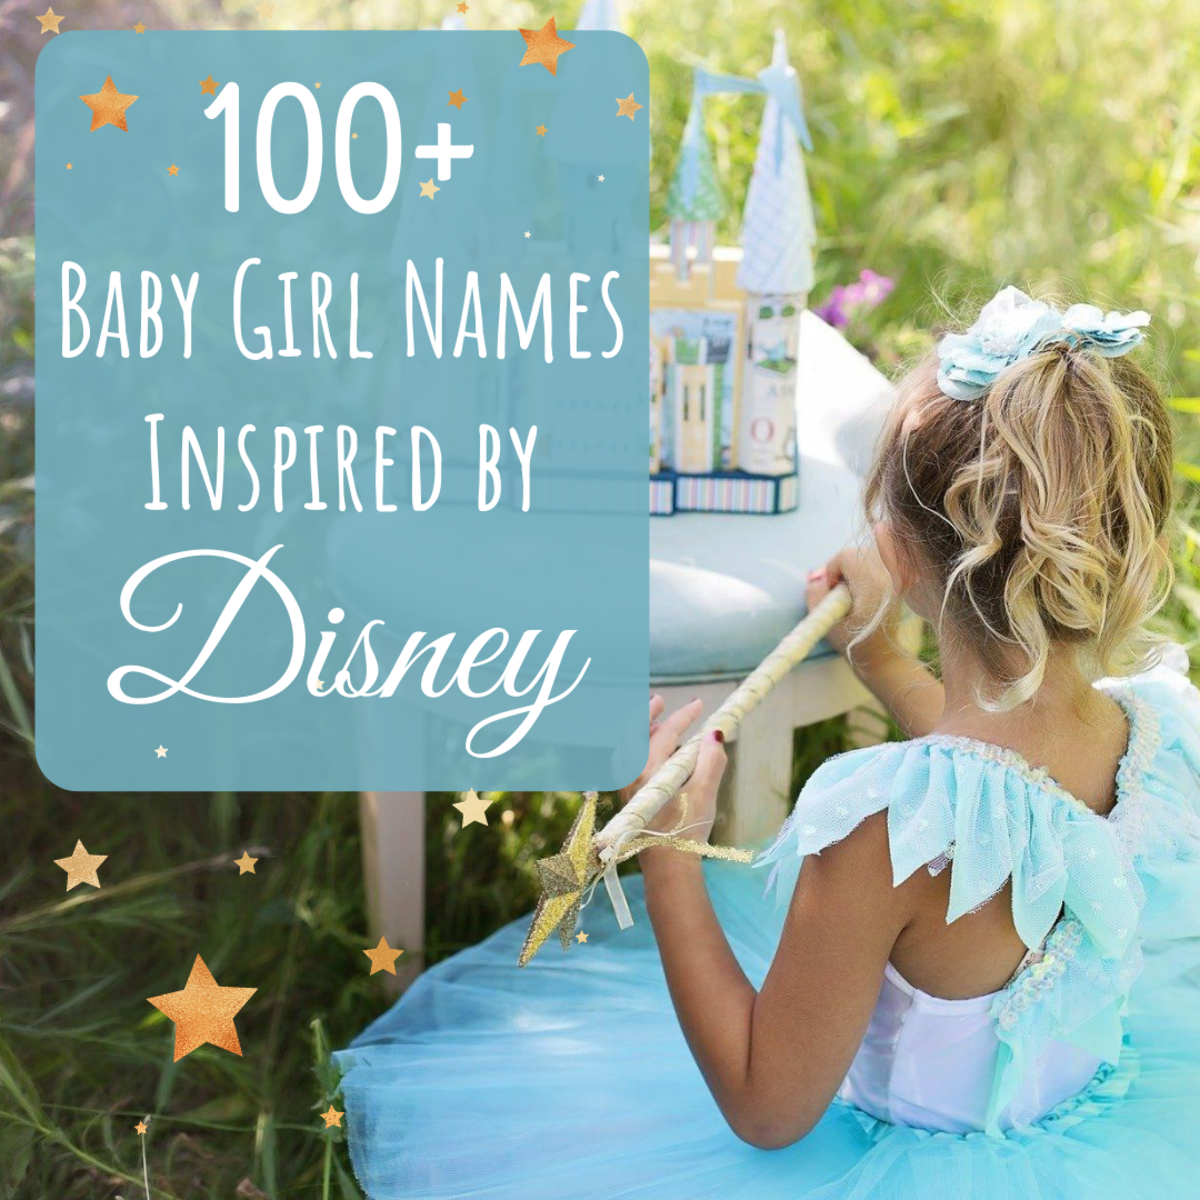 The world of Disney offers hundreds of strong, beautiful names for women. Find inspiration for your baby girl's name in this list!